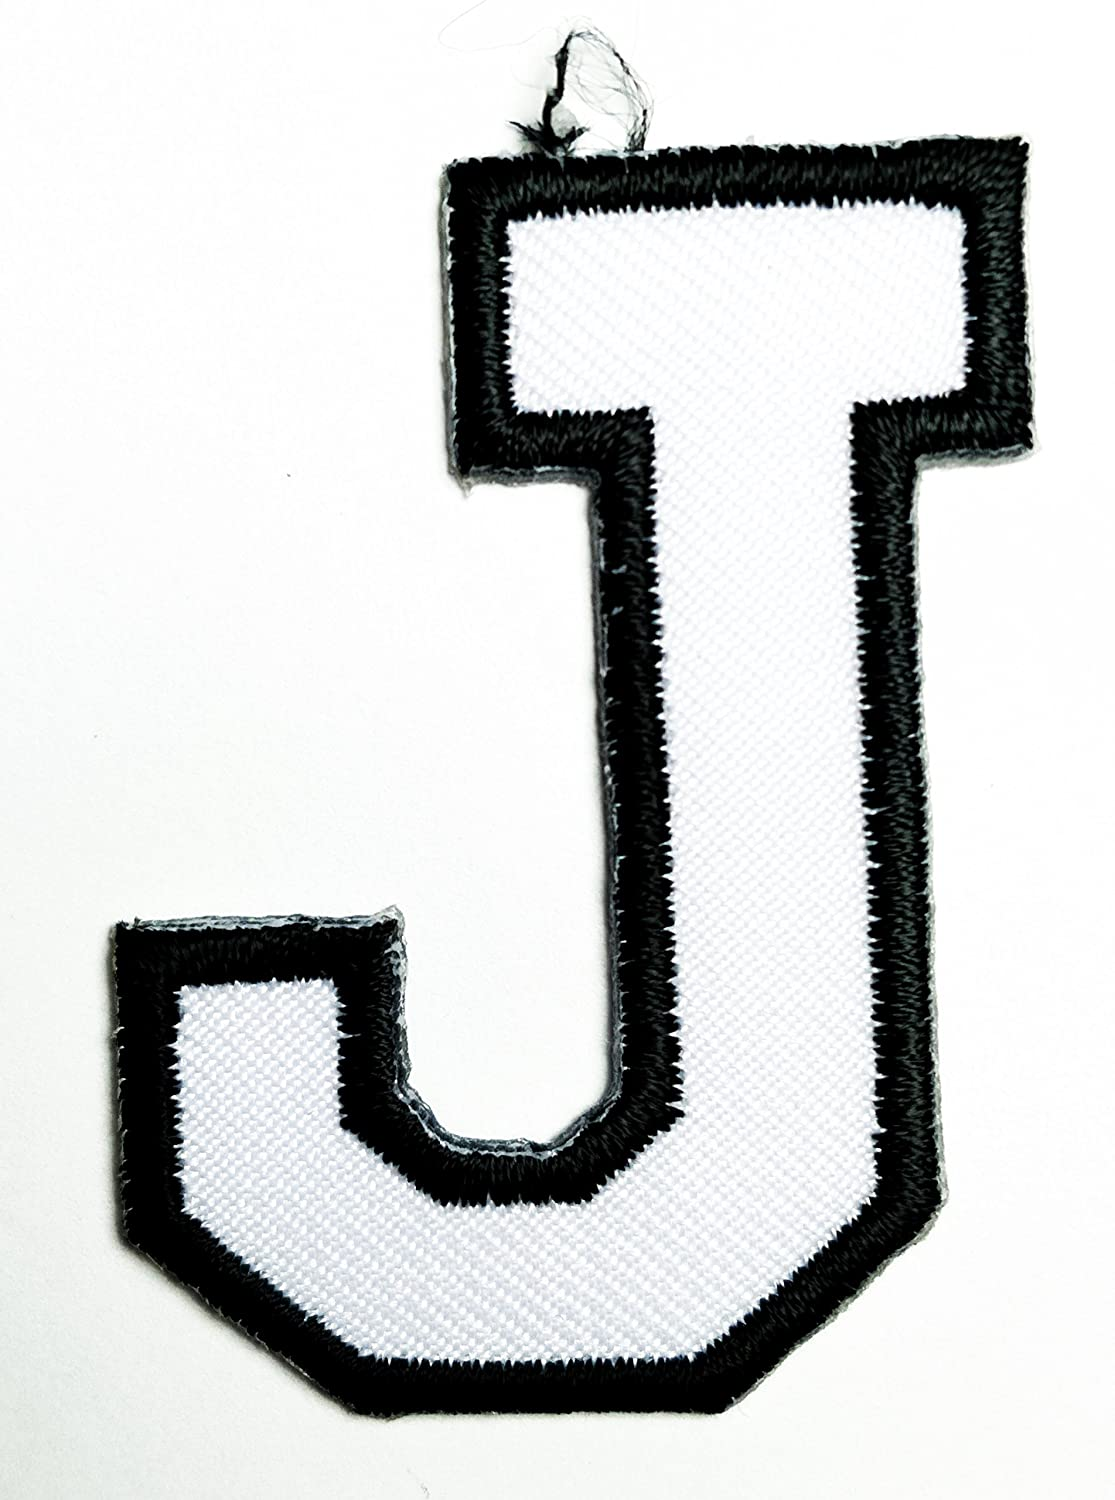 HHO White letter J Patch English Alphabet Character Embroidered DIY Patches, Cute Applique Sew Iron on Kids Craft Patch for Bags Jackets Jeans Clothes